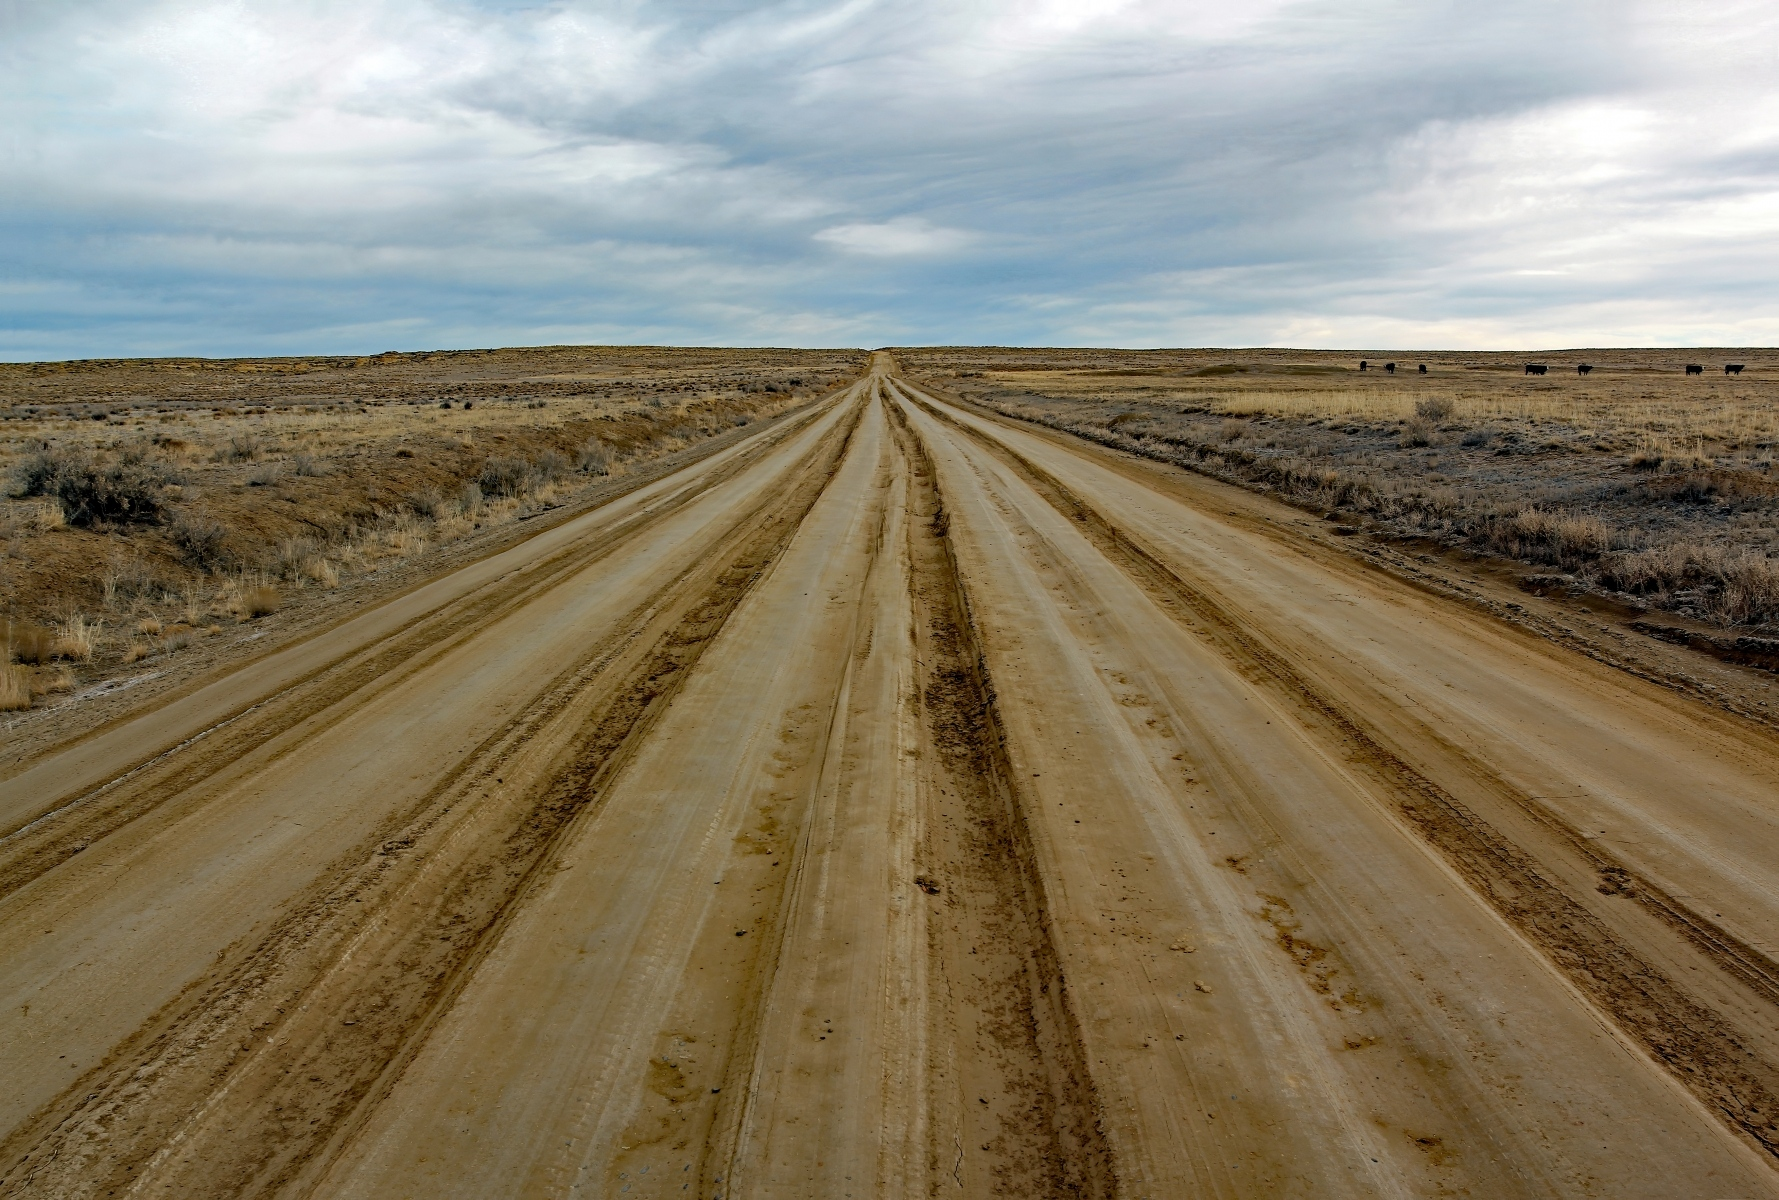 A heavily rutted road near Chaco Canyon in Nageezi, NM